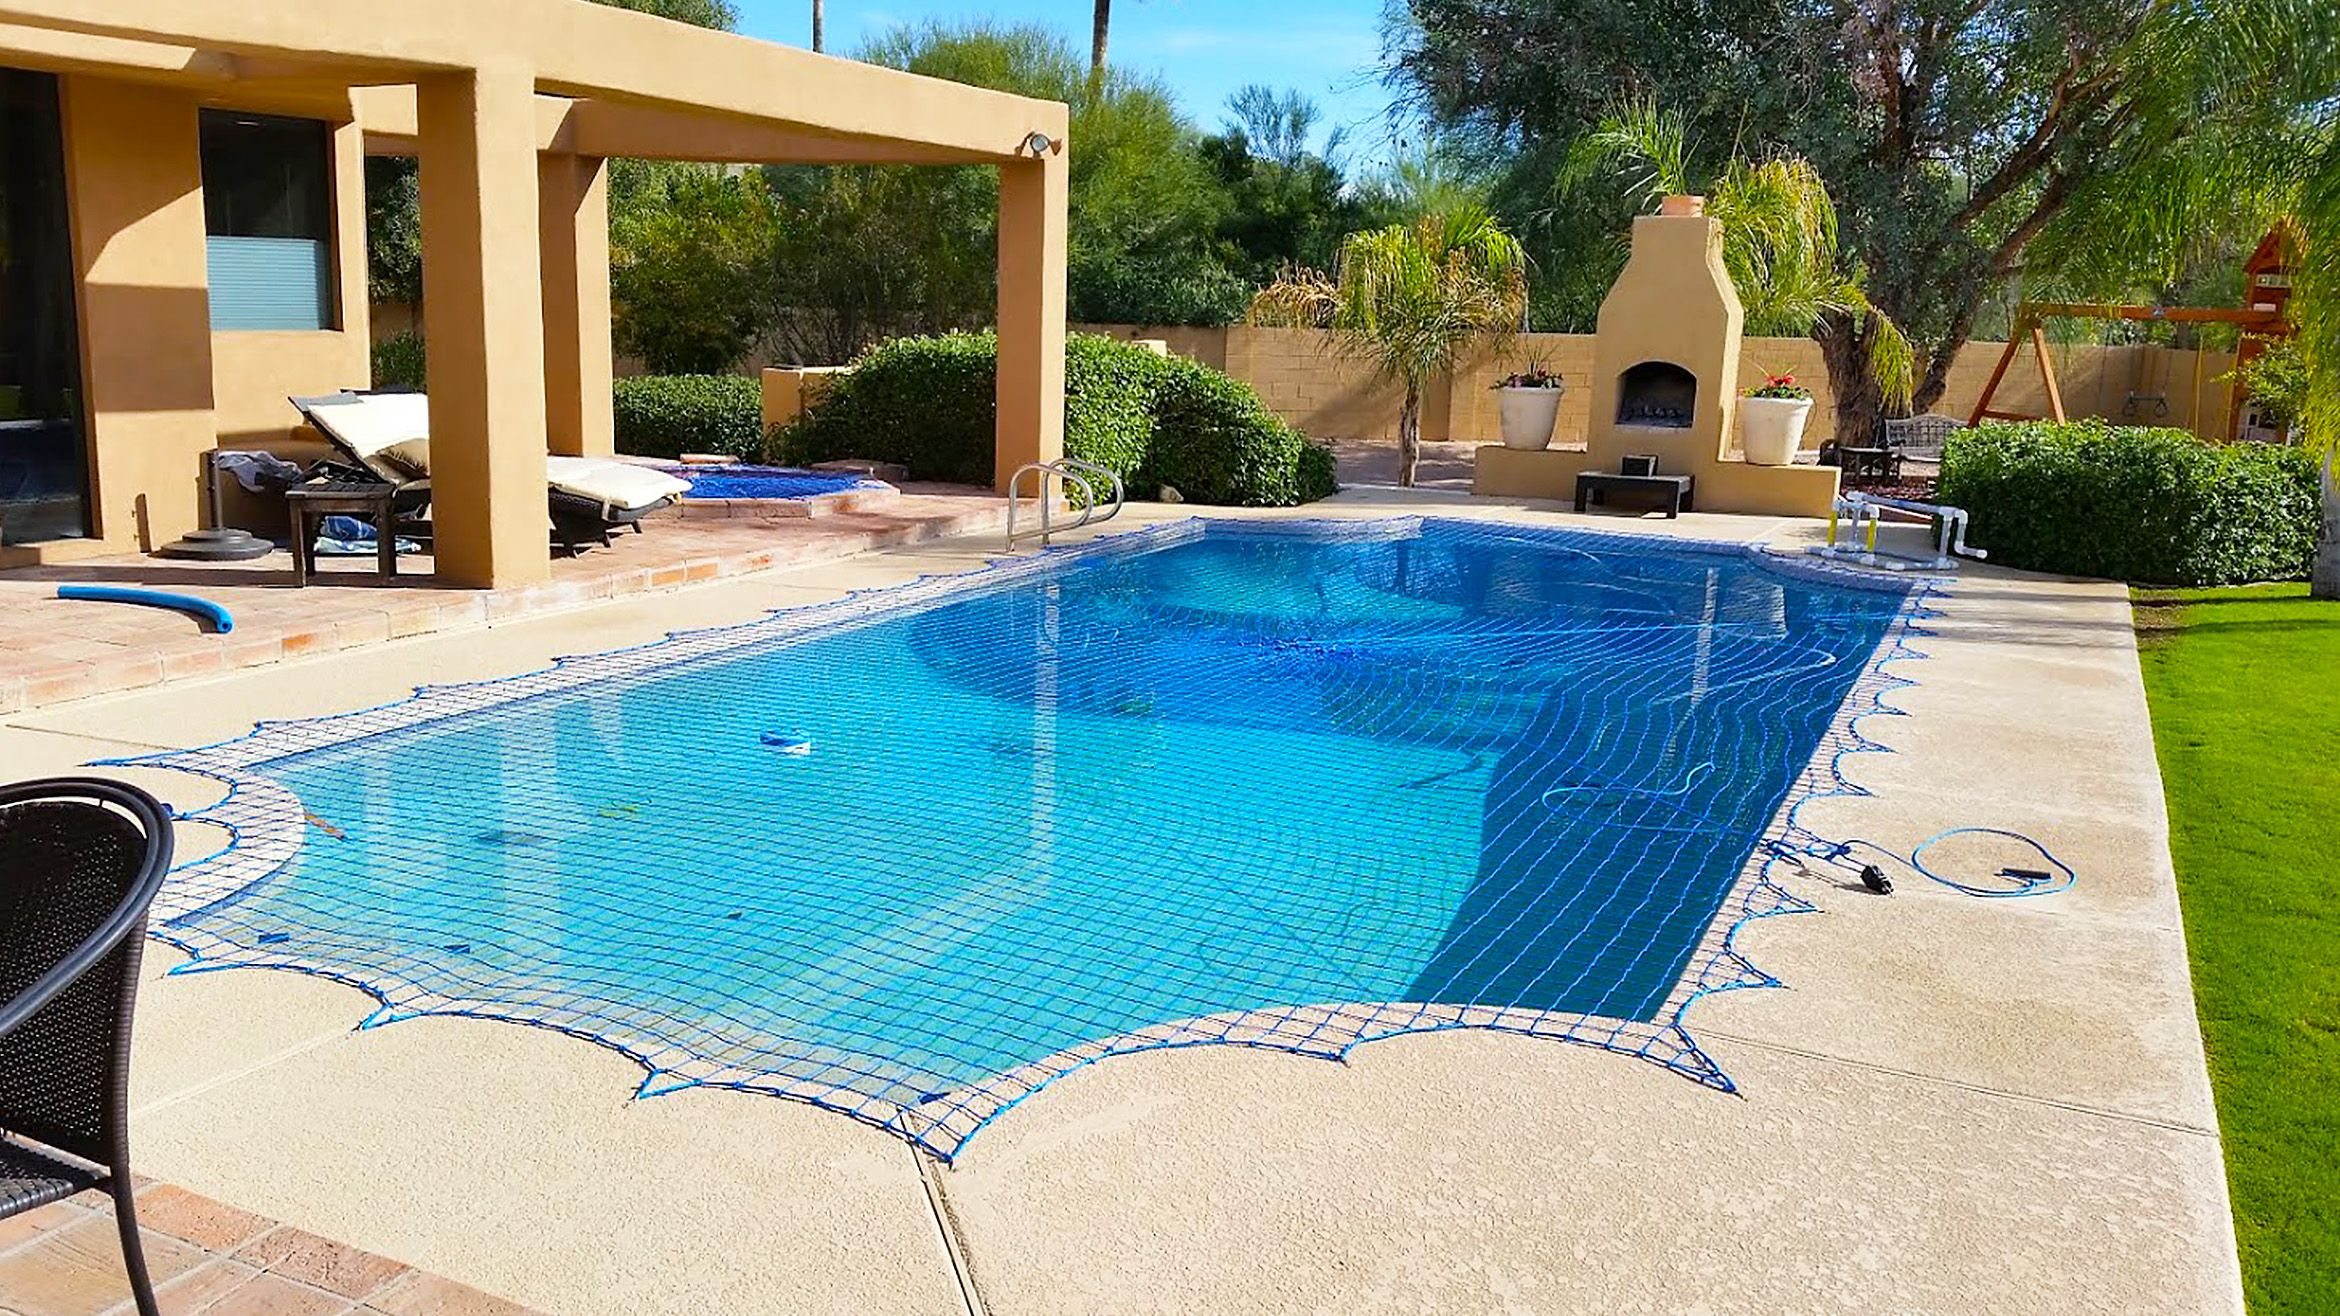 Created By Us In 1972 Katchakid Pool Safety Nets Are The 1 Pool Net In America See All The Pool Safety Products In Our Line And L Pool Pool Nets Pool Safety